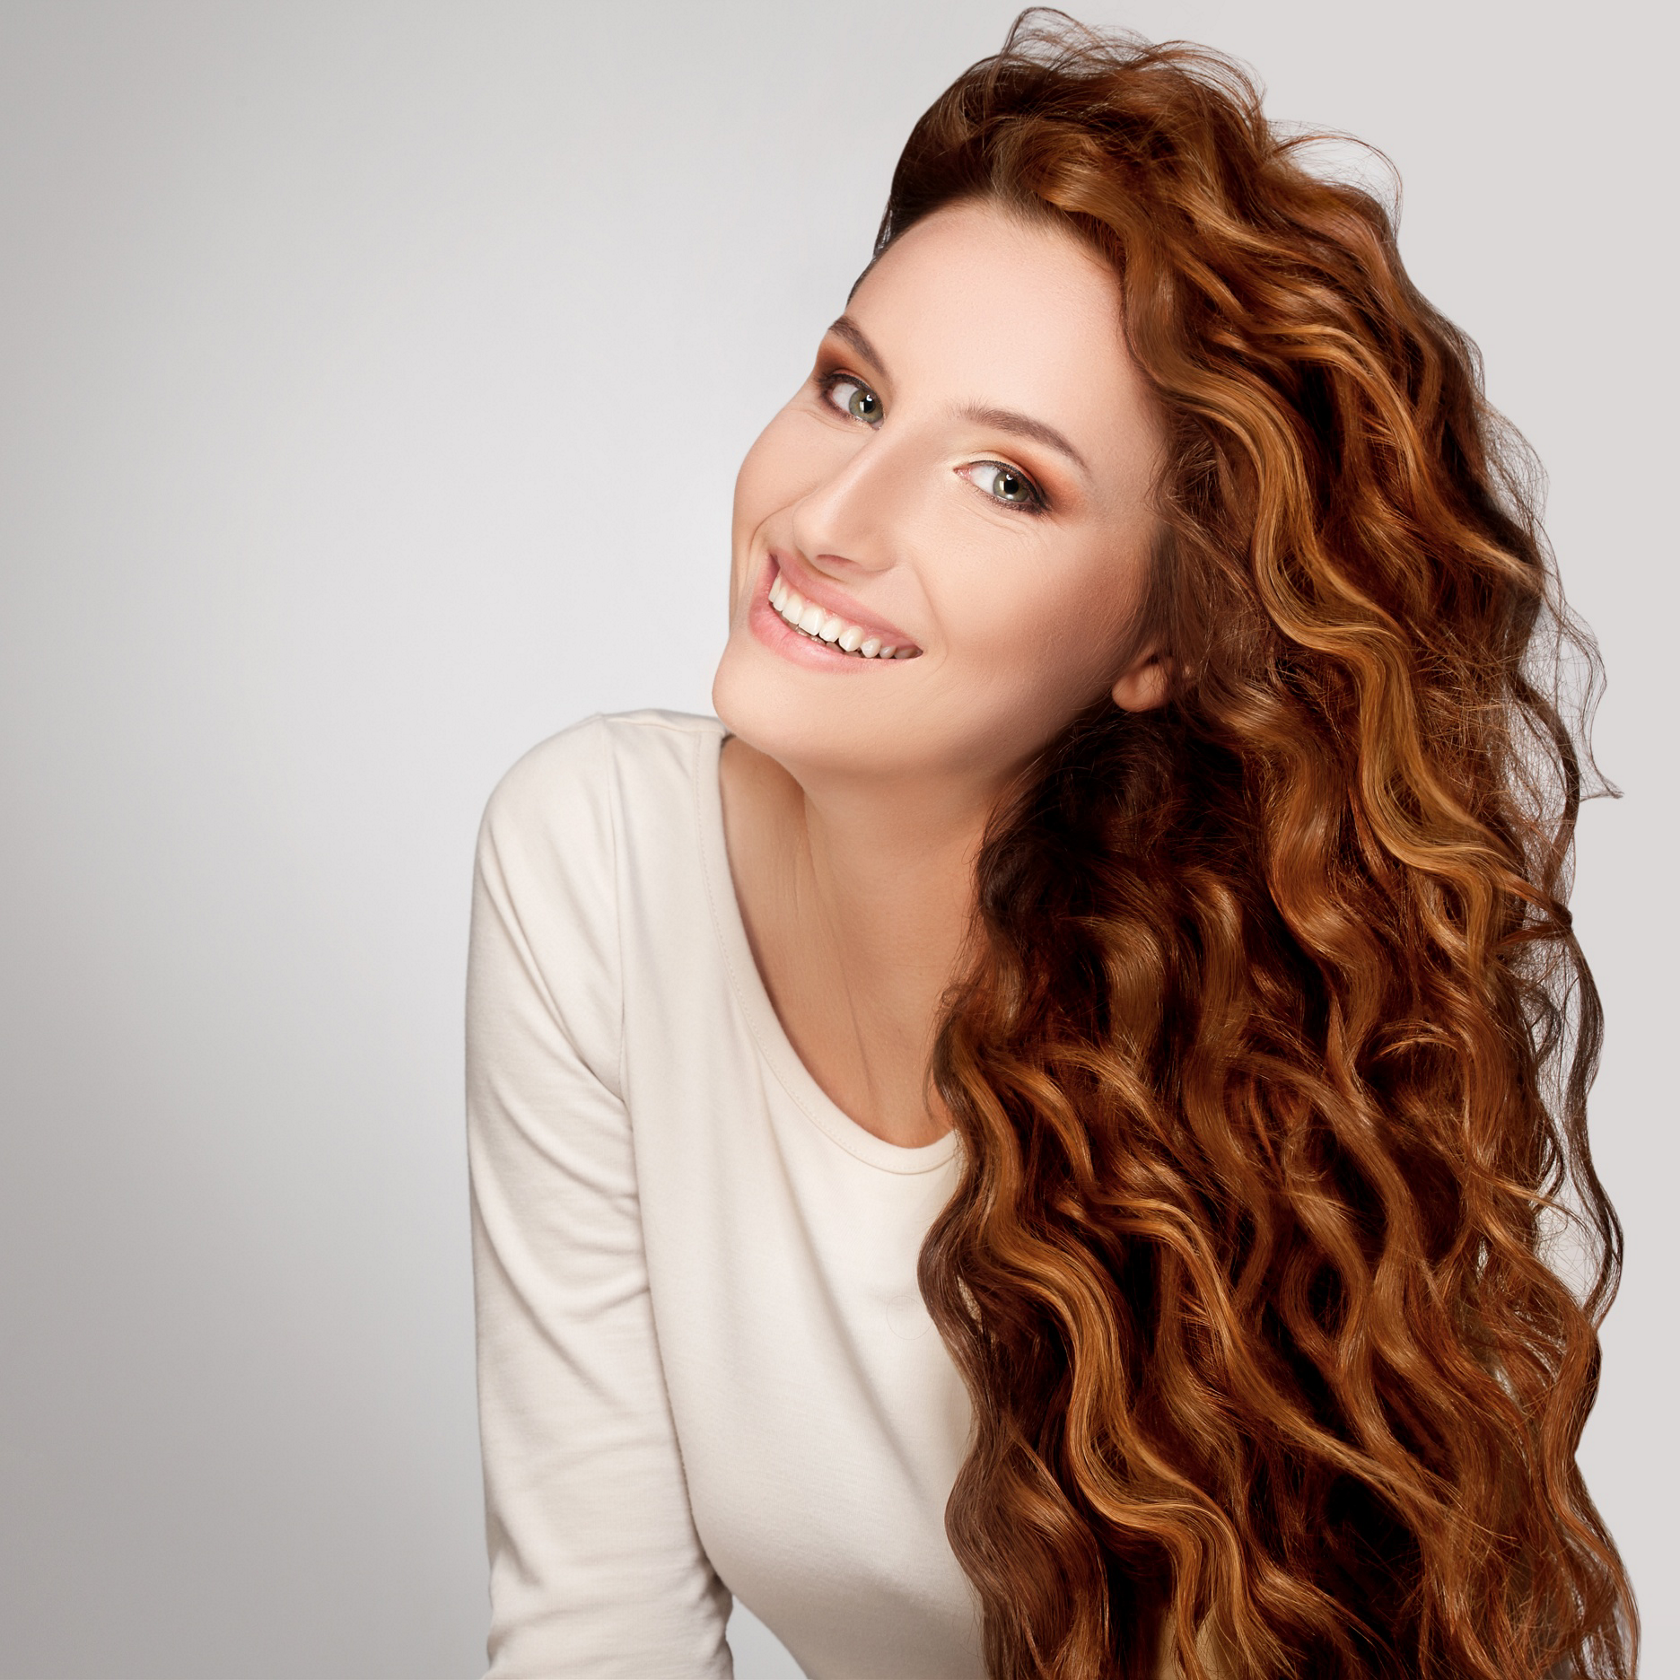 4 Hairstyles For Curly Frizzy Hair Expert Styling Tips John Frieda